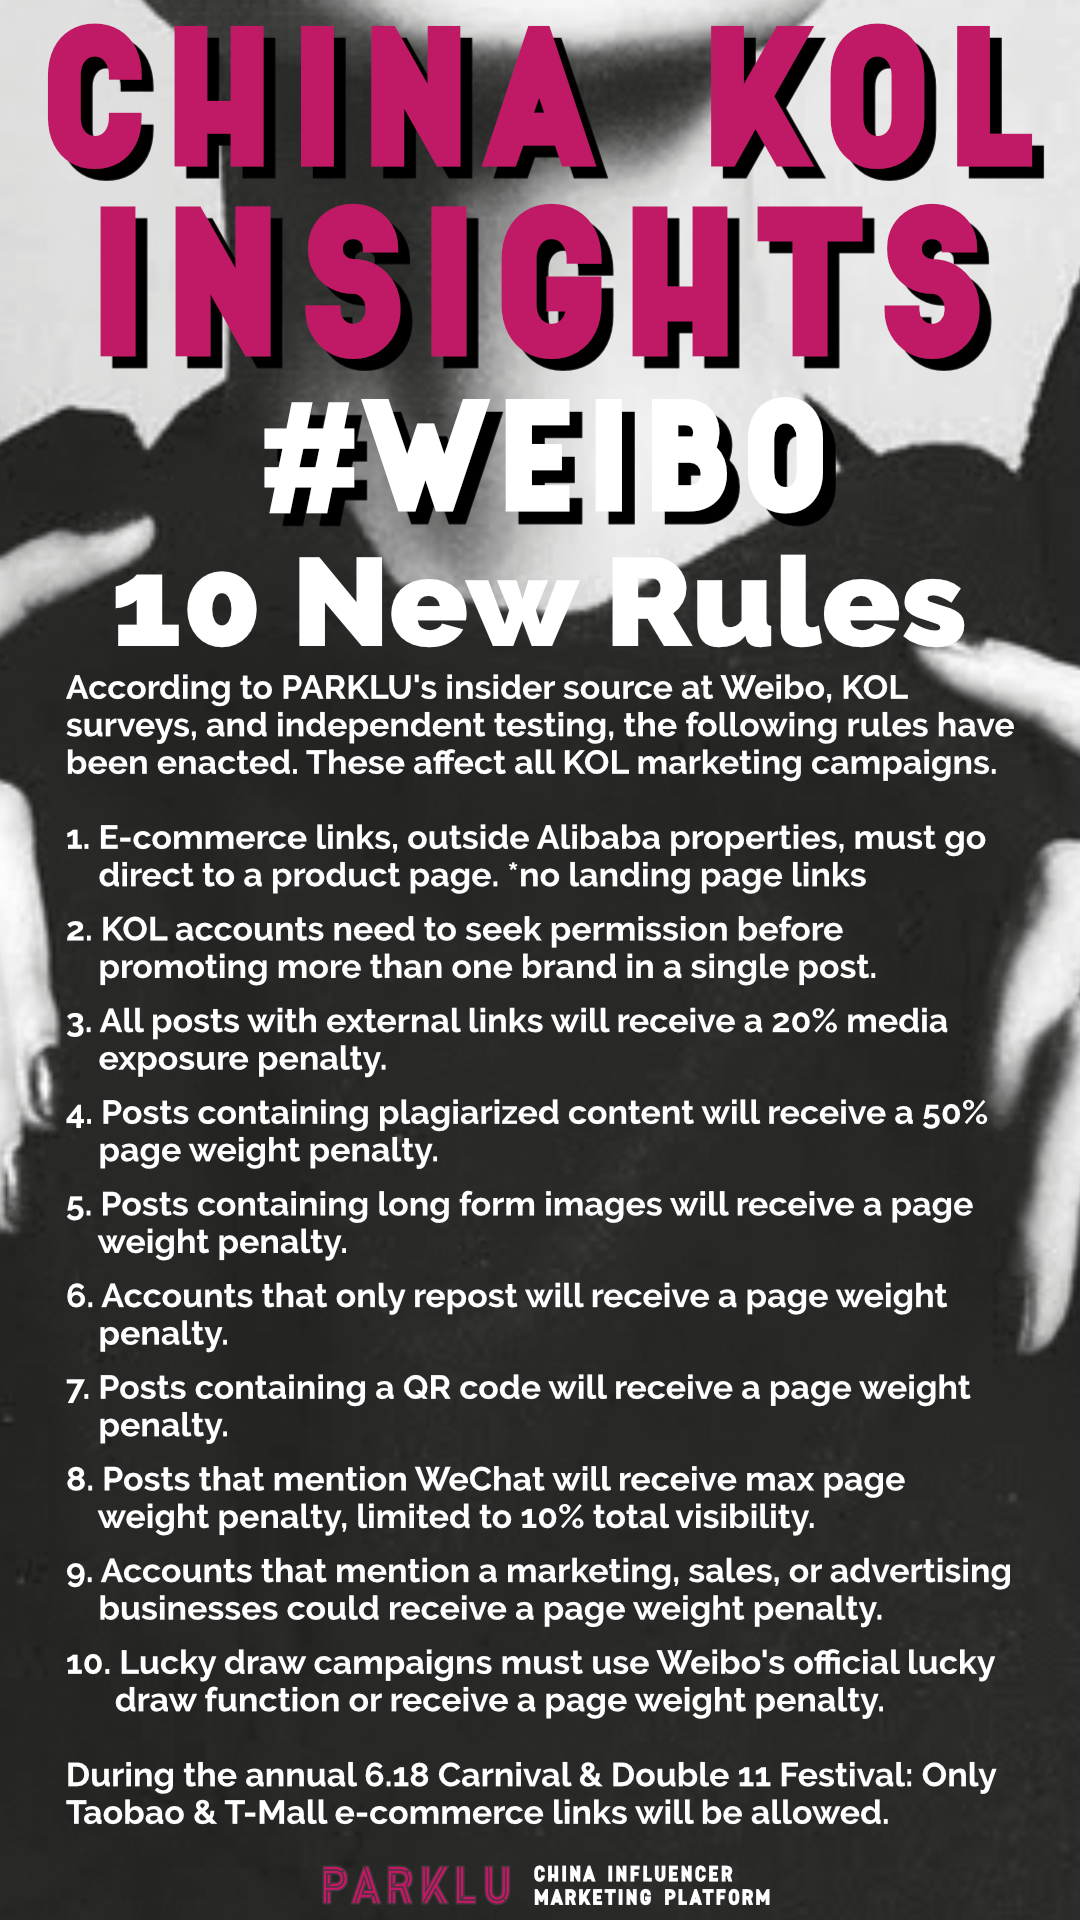 10 New Rules for a Weibo KOL